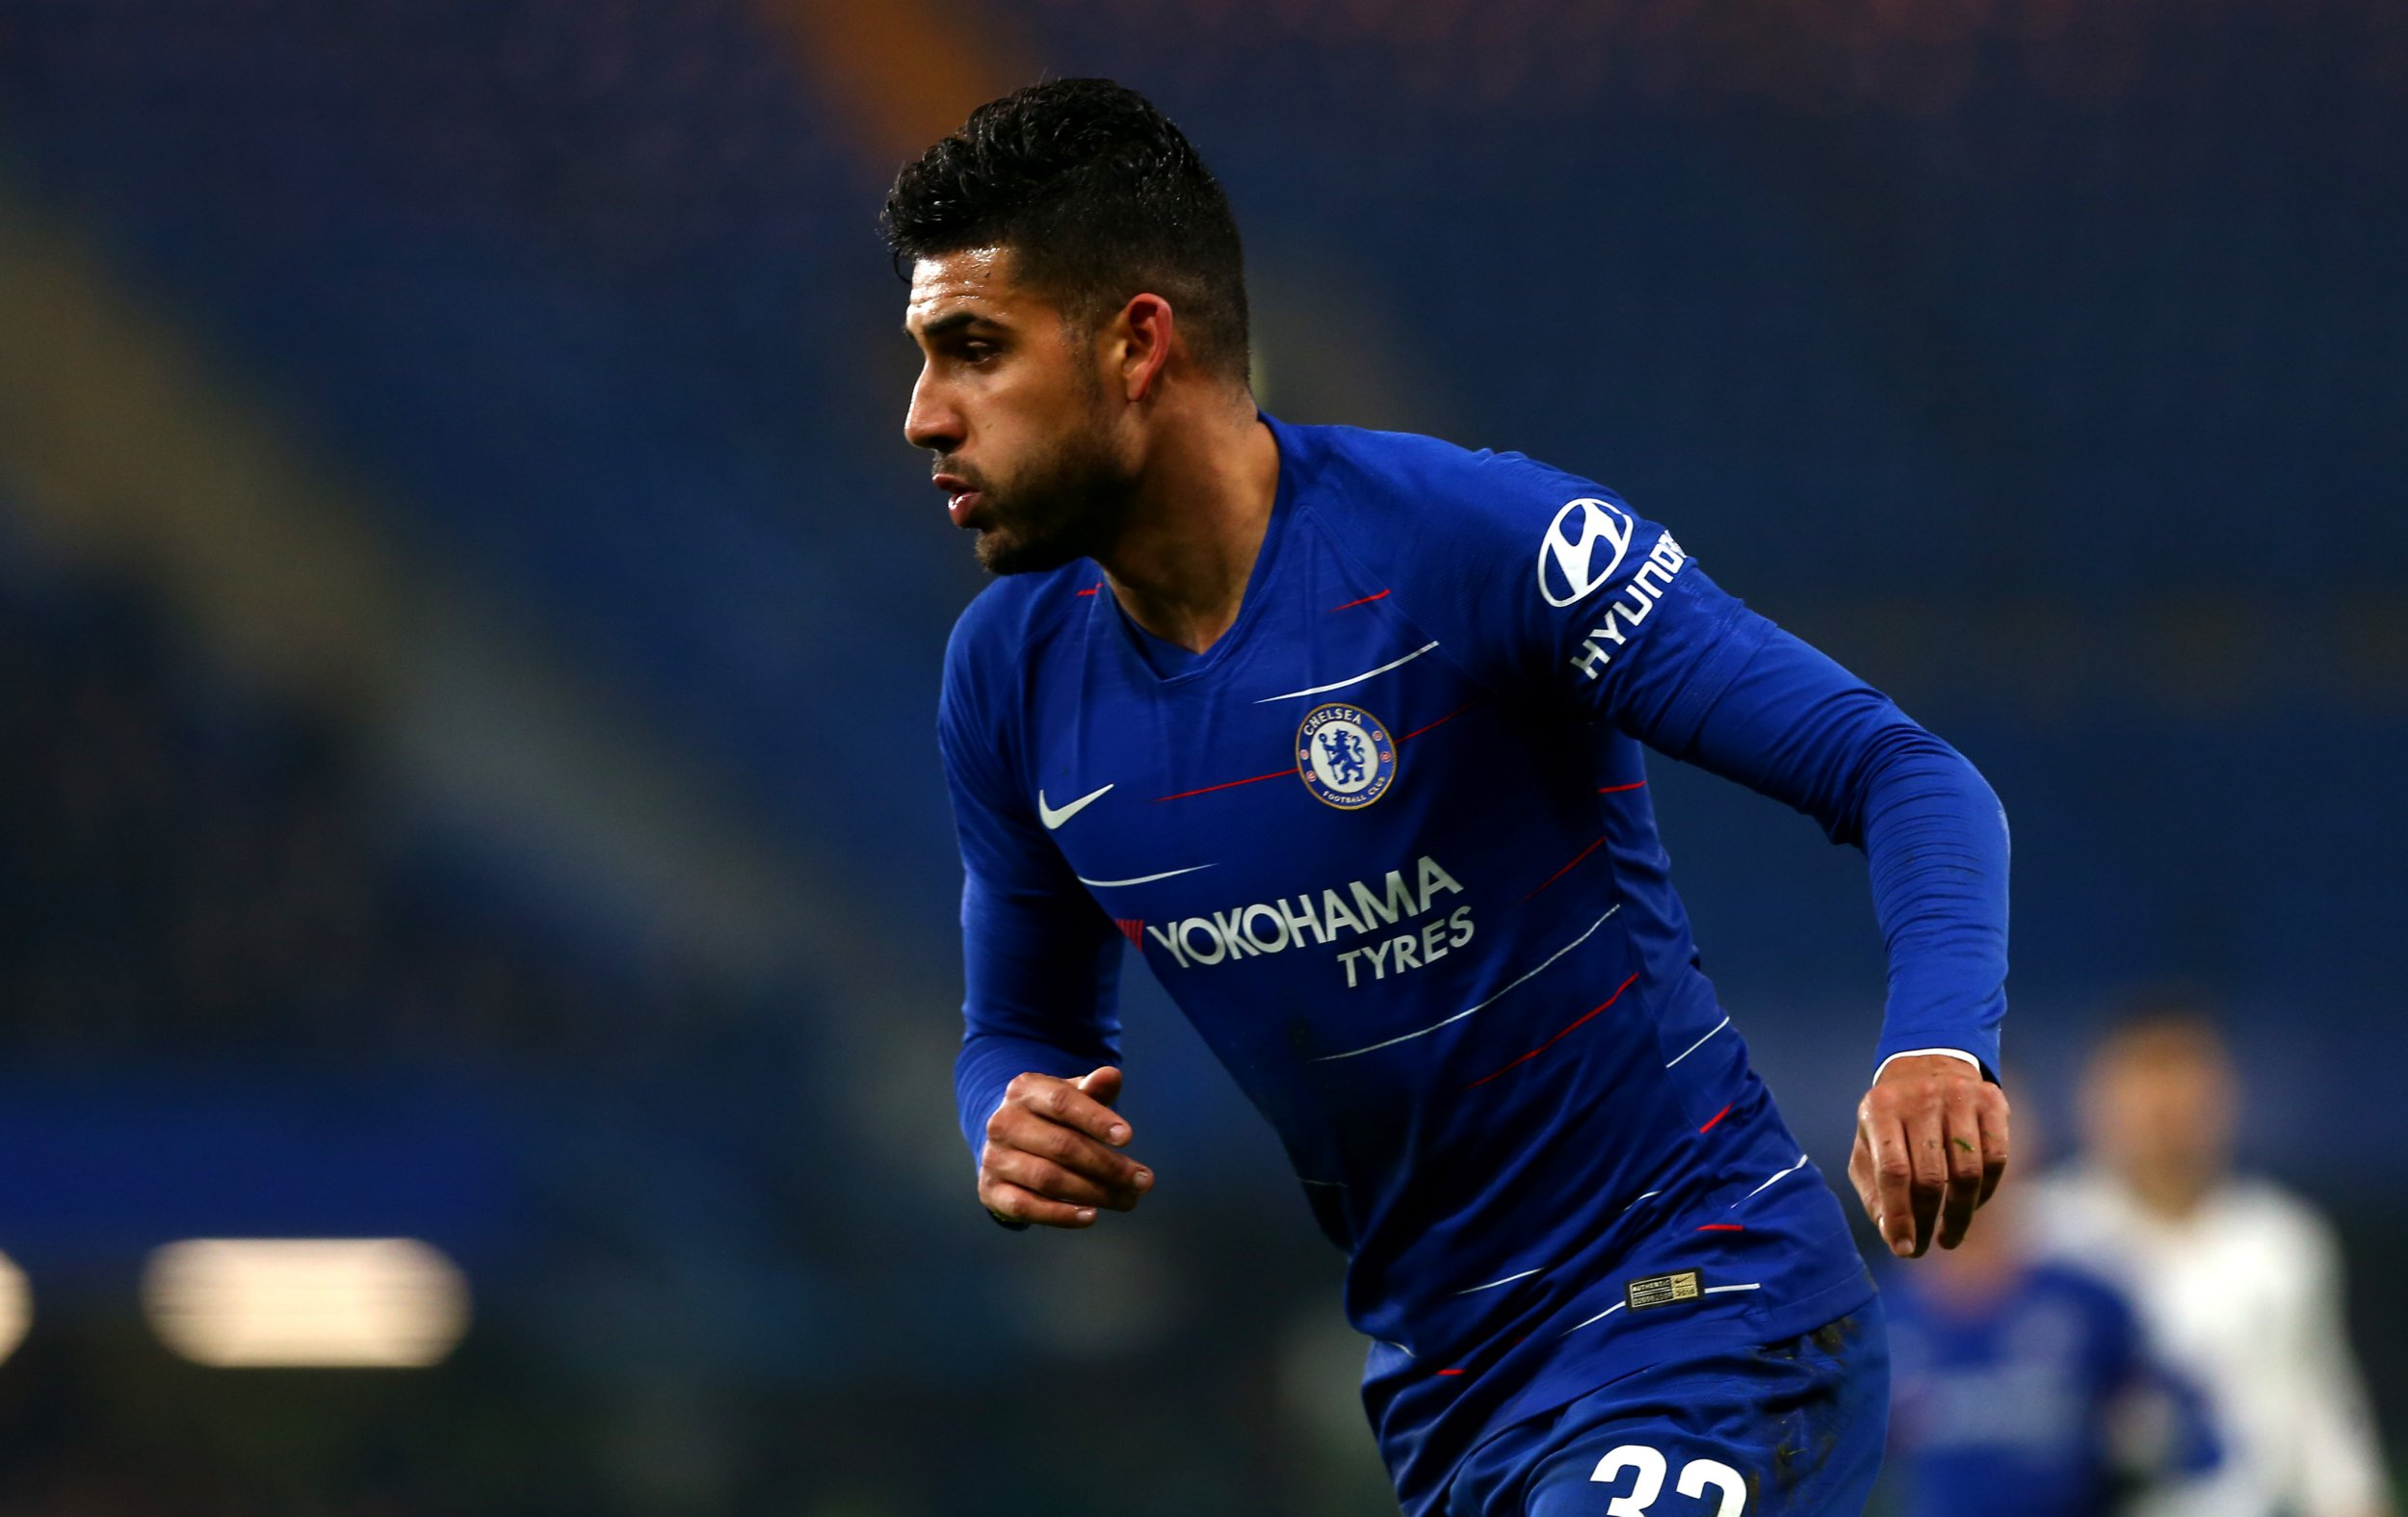 Maurizio Sarri reveals why Emerson Palmieri is not always starting ahead of Marcos Alonso for Chelsea